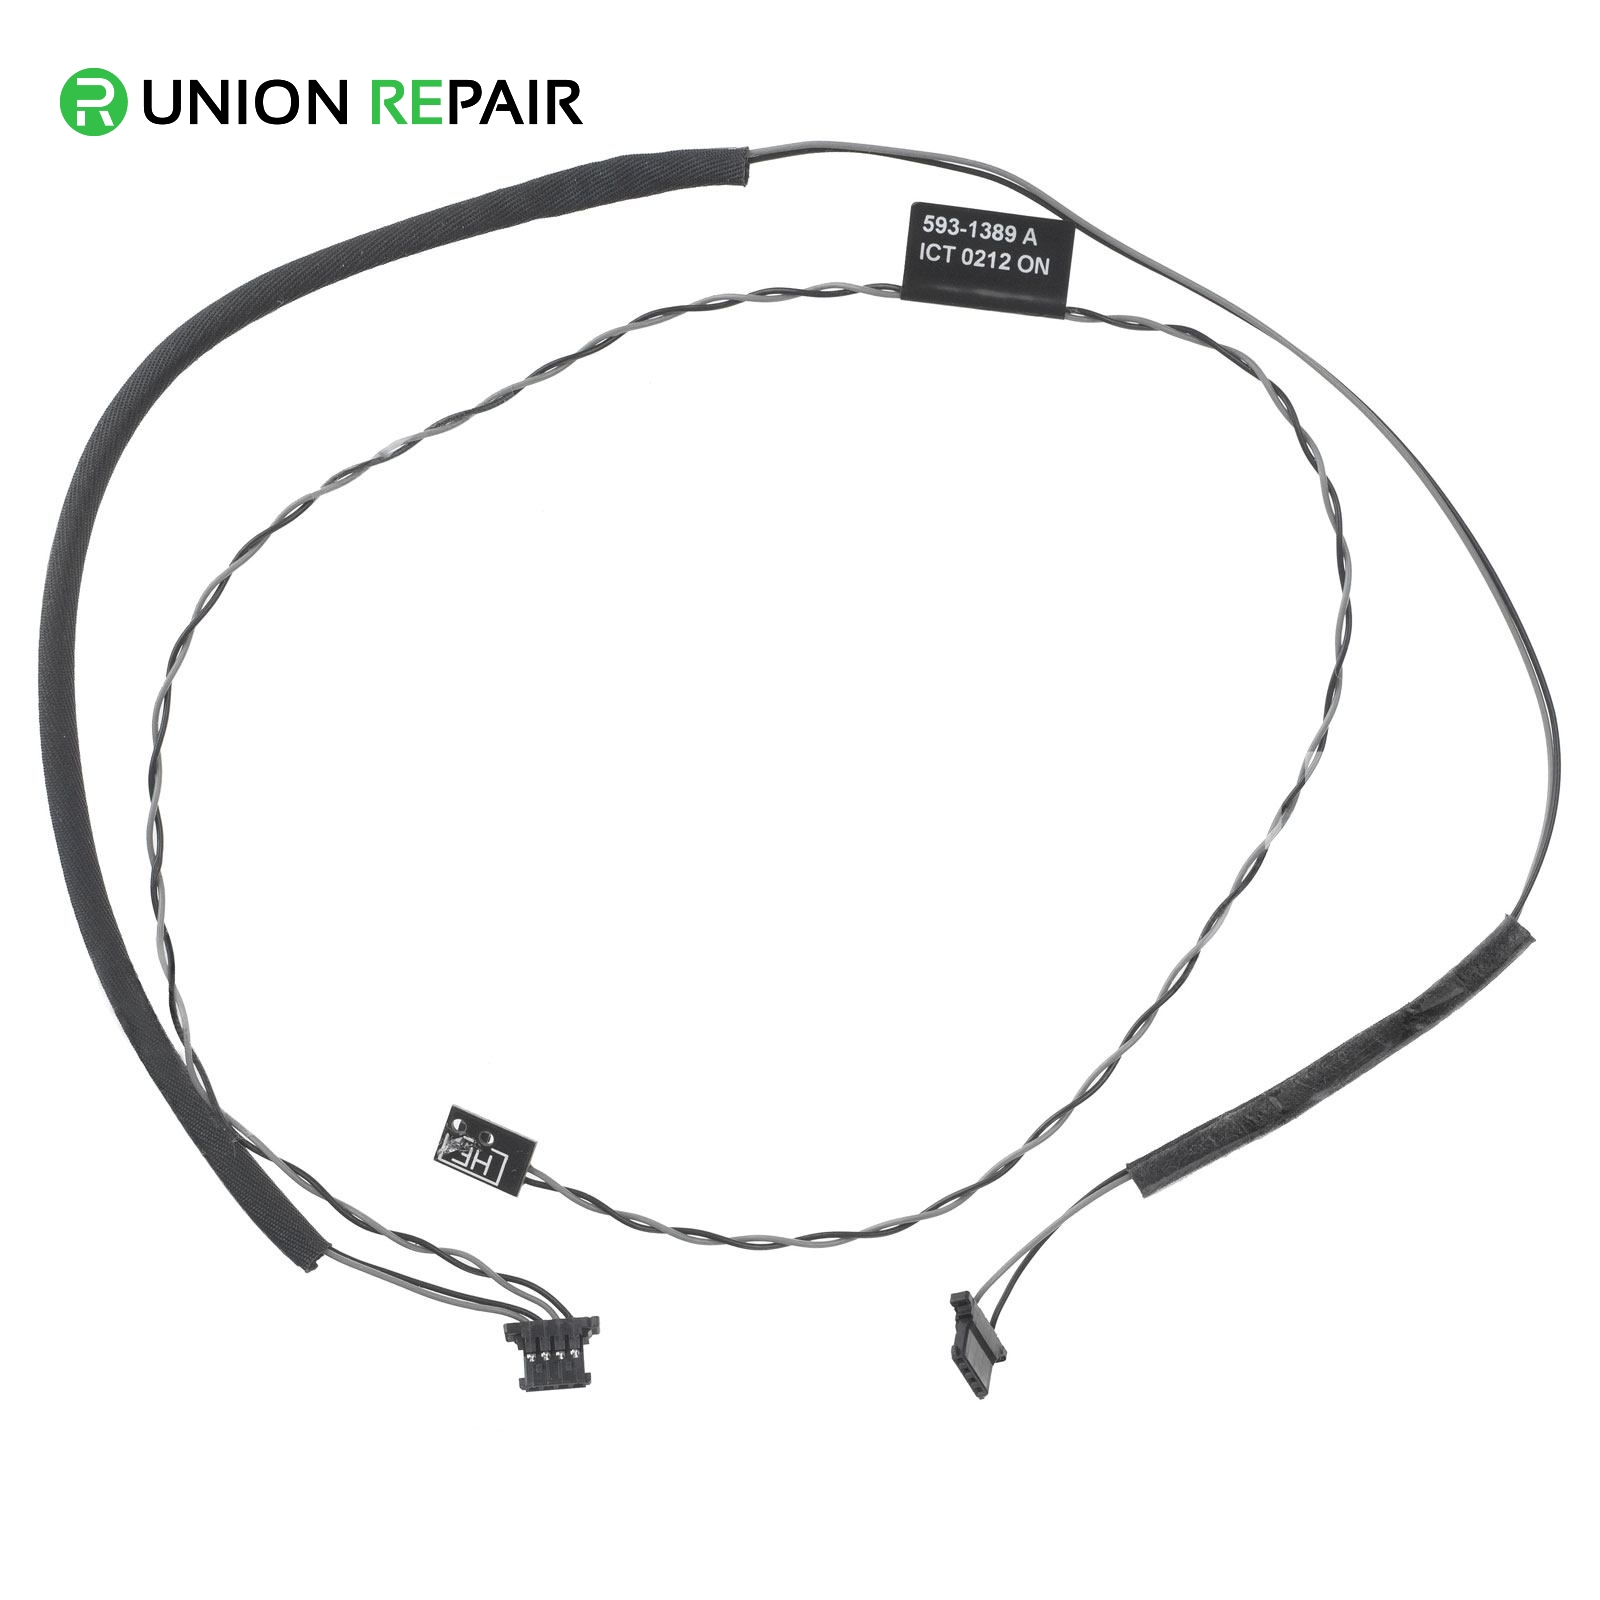 LVDS V-Sync Temperature Cable for iMac 21.5